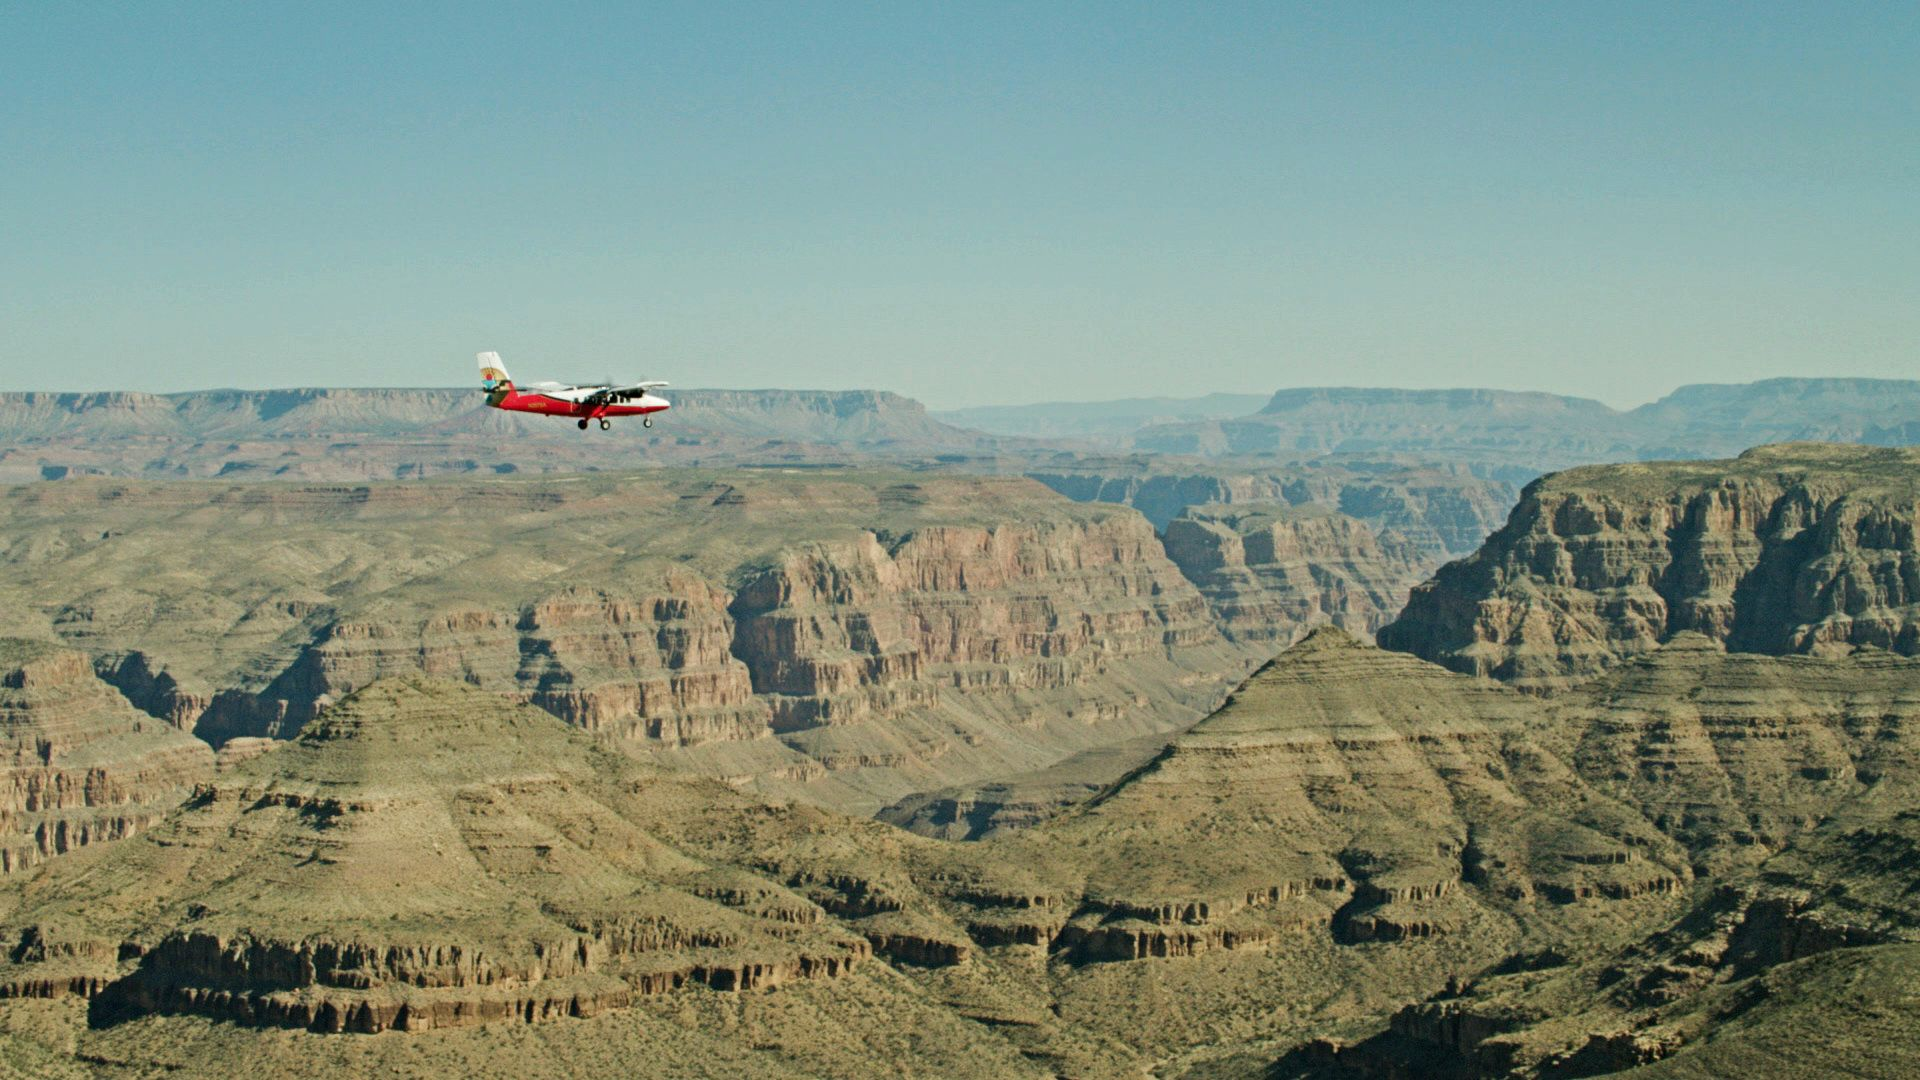 Grand Canyon Scenic Airlines plane over Grand Canyon